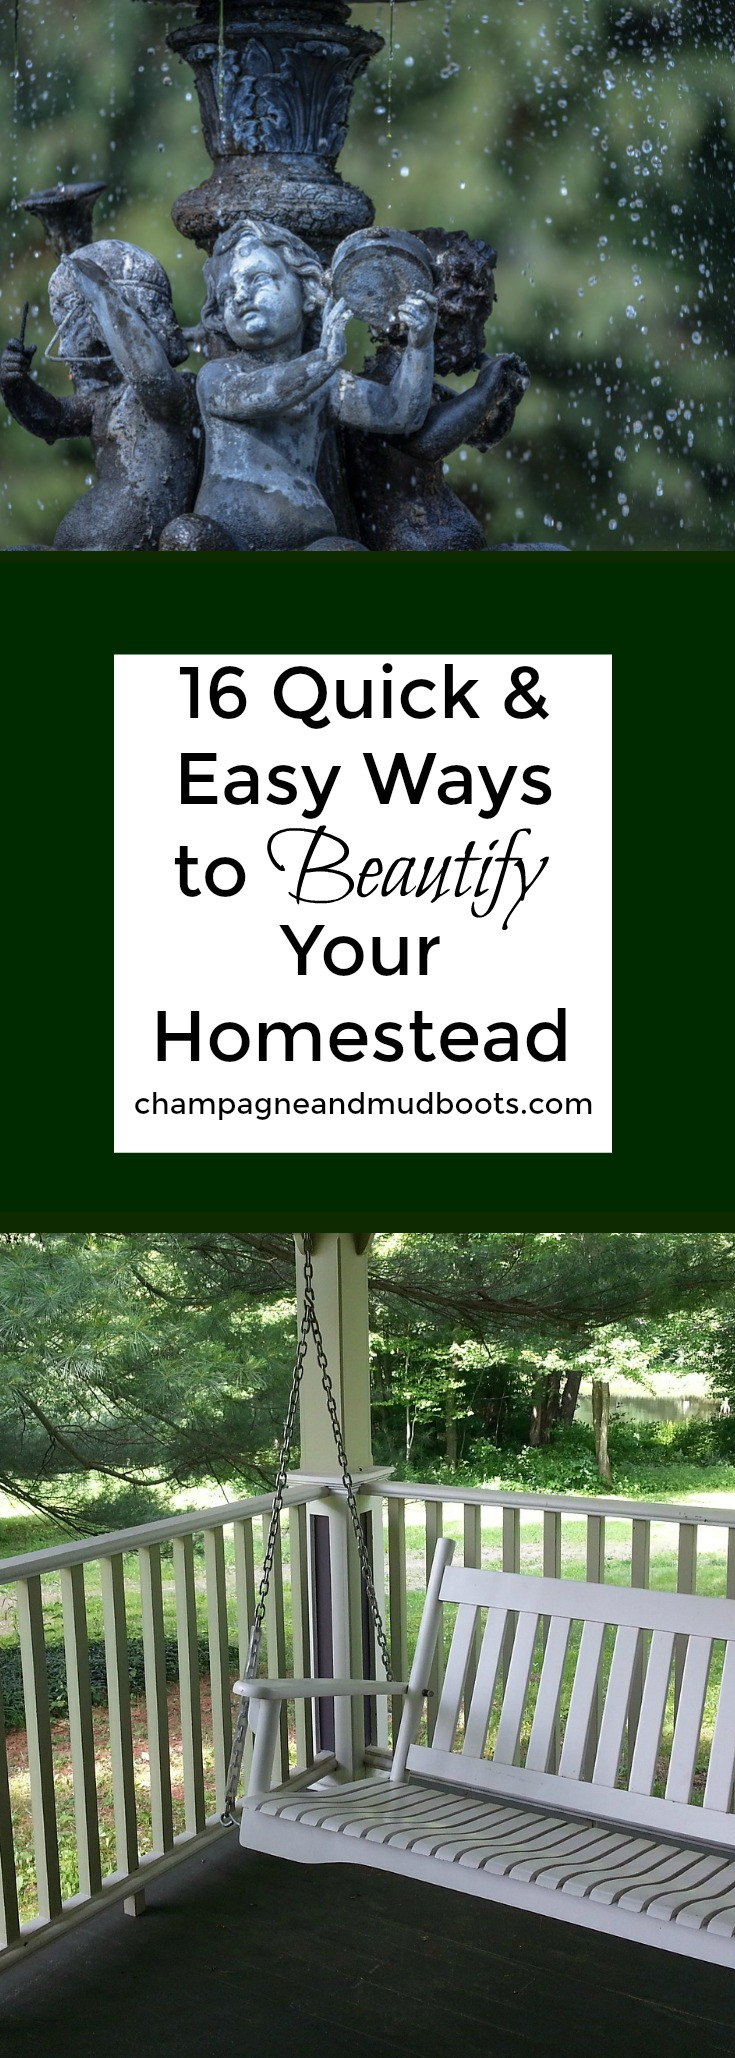 Tips and easy ideas to beautify and enjoy your homestead by creating a more elegant living experience everyday and for your guests.